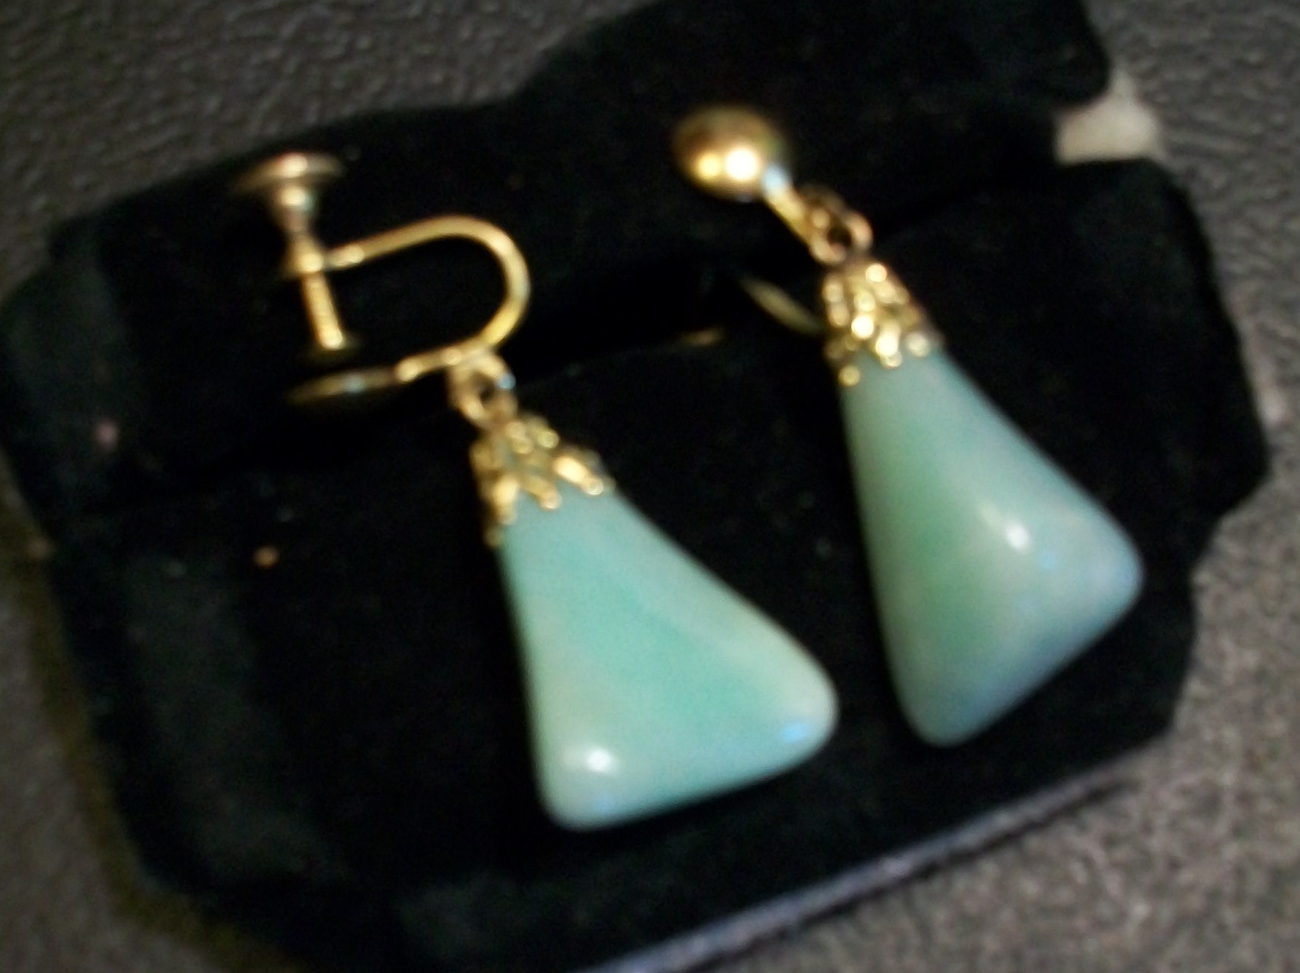 Vintage Jade Colored Polished Stone Earrings - Screw-back